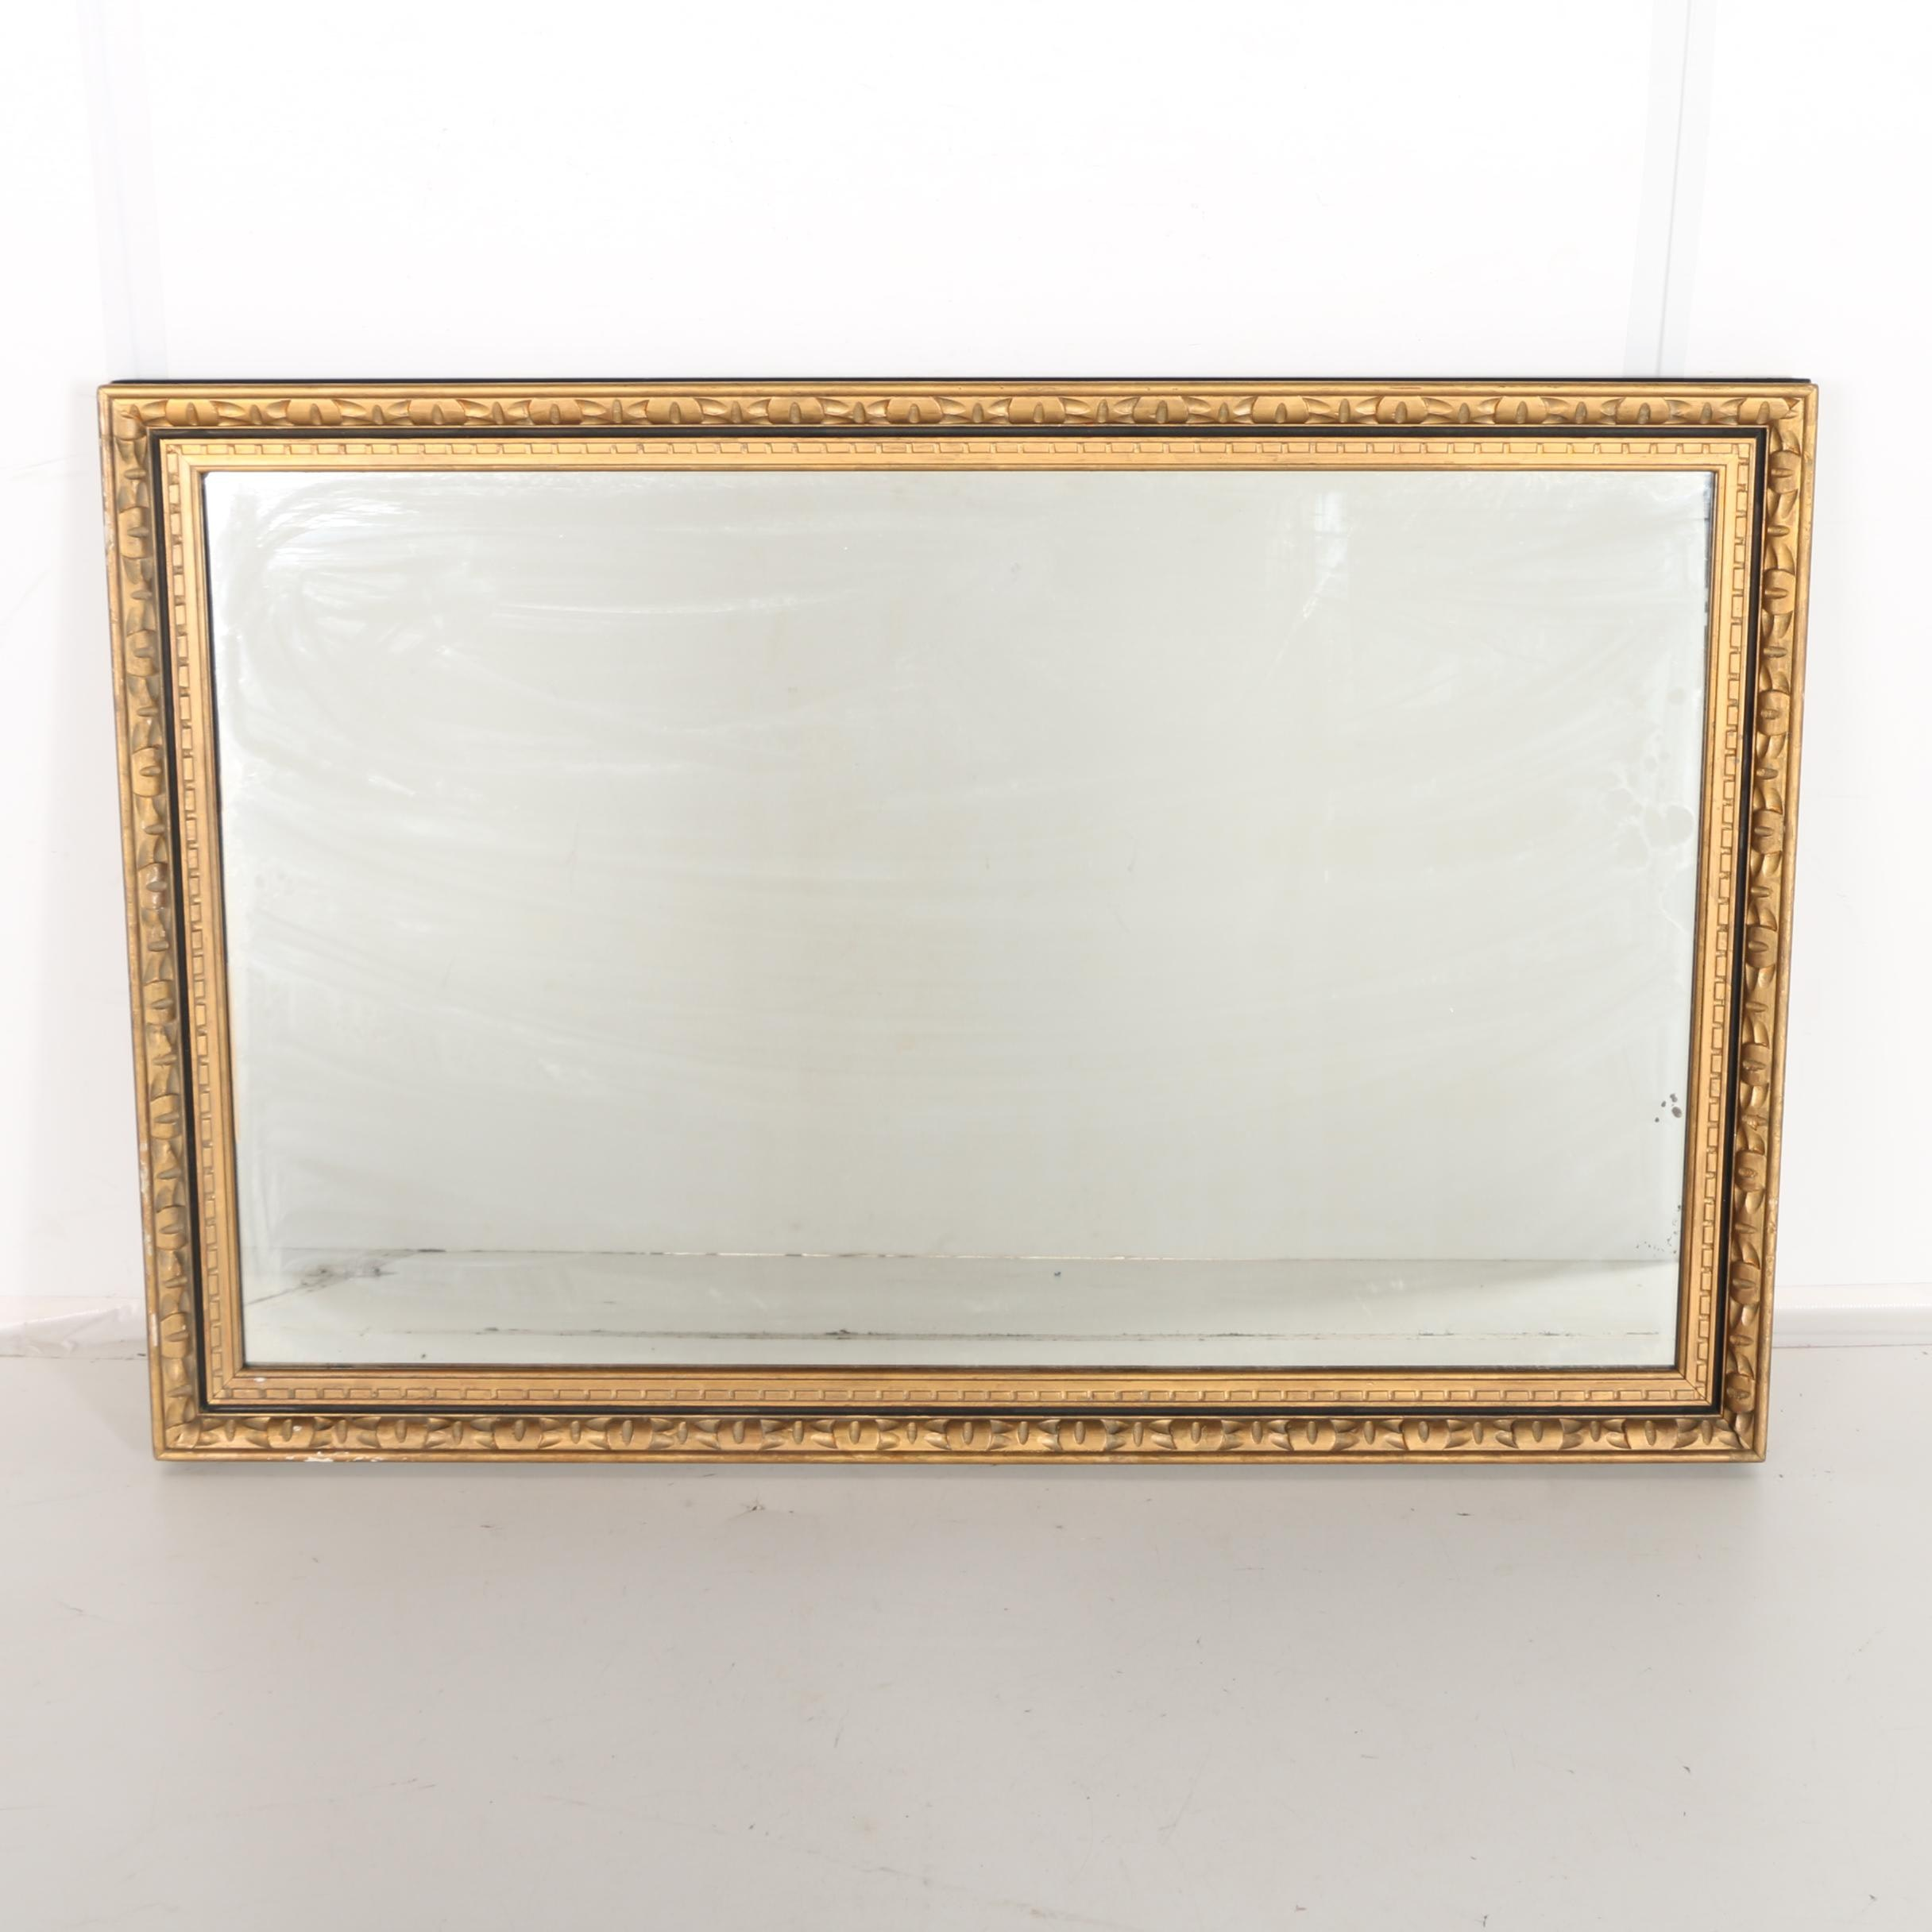 Gold Tone Carved Wooden Mirror